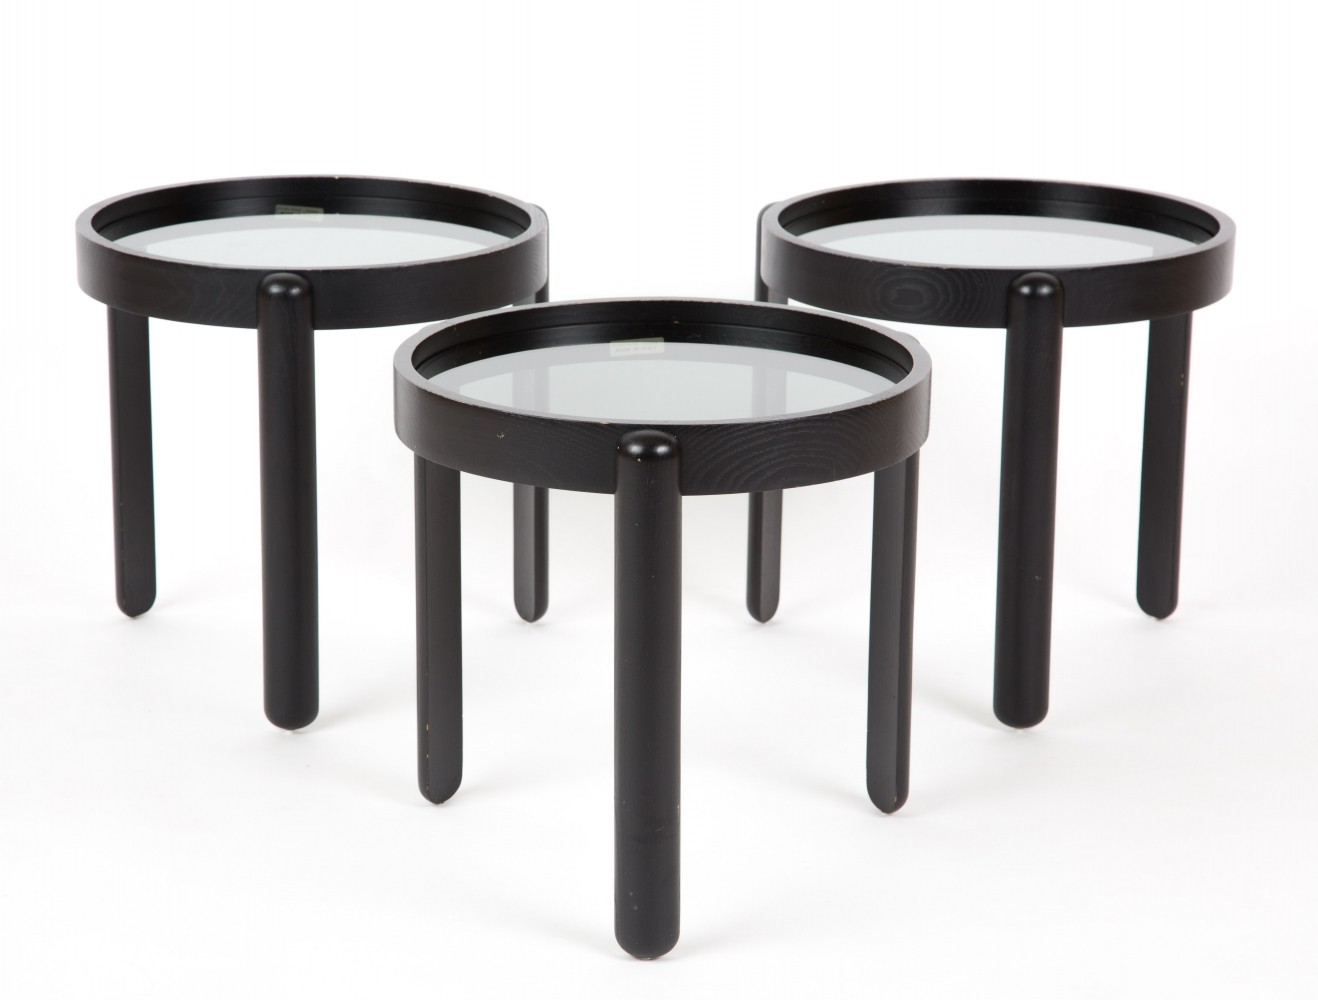 set of 3 porada arredi nesting tables 1970s 61399